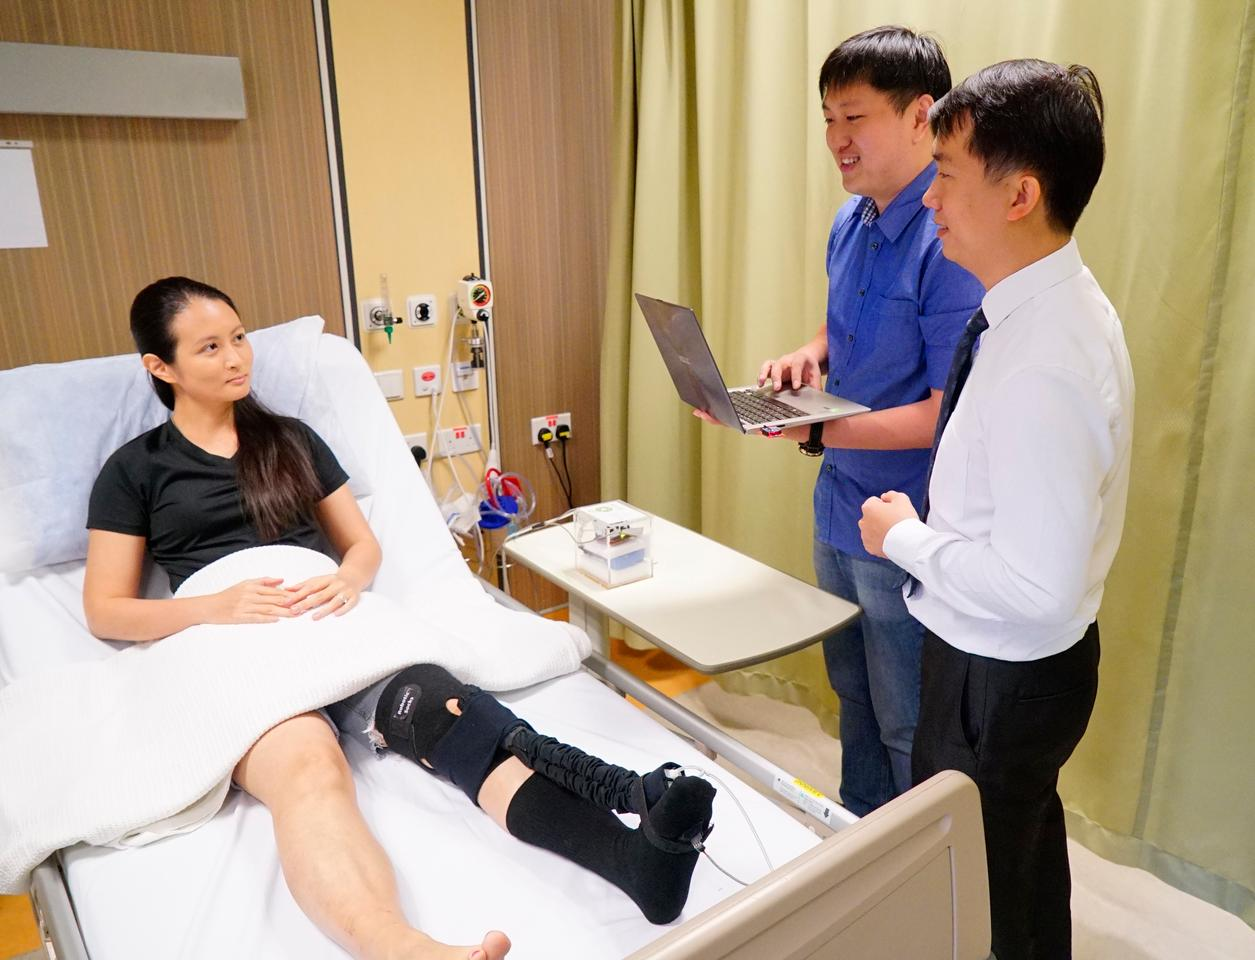 NUS researchers (from right to left) Assistant Professor Raye Yeow, Mr Low Fanzhe and Dr Liu Yuchun demonstrating the novel bio-inspired robotic sock (Photo: National University of Singapore)